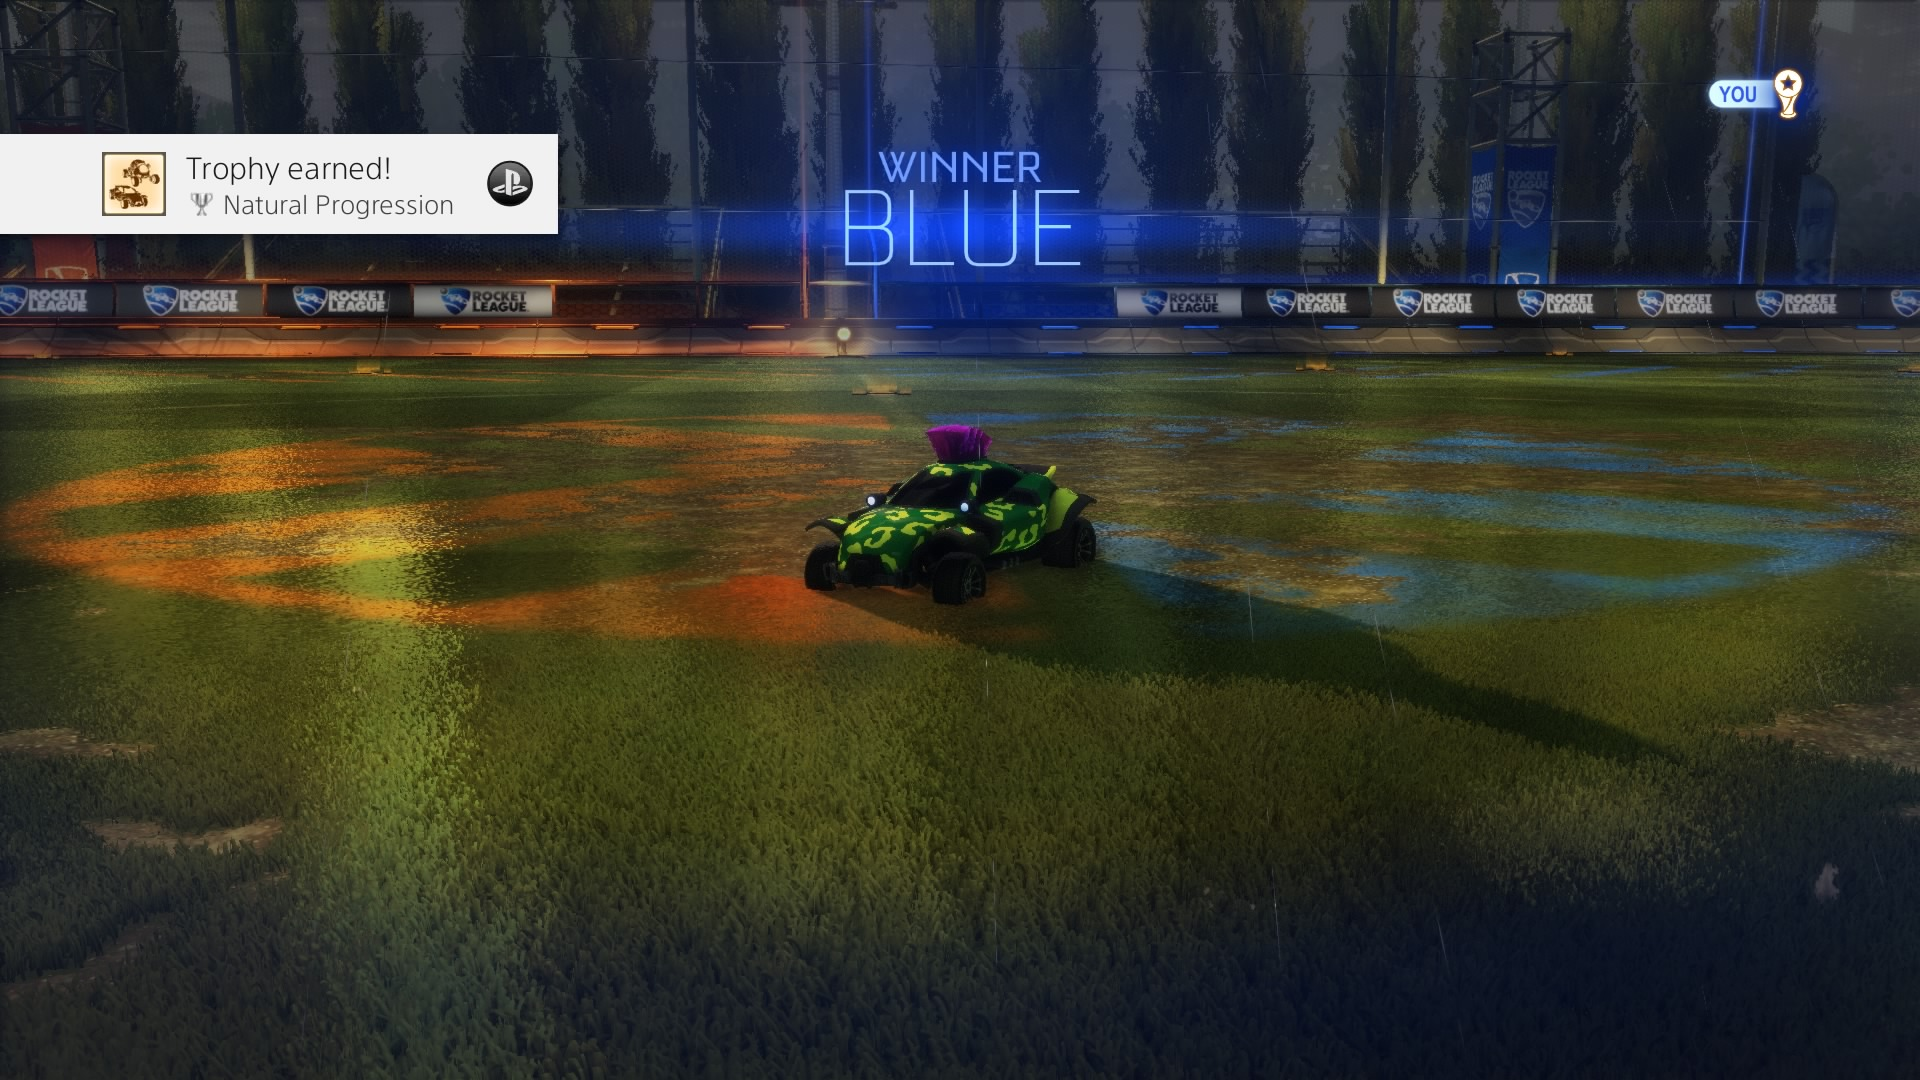 rocket league natural progression trophy wallpaper 64439